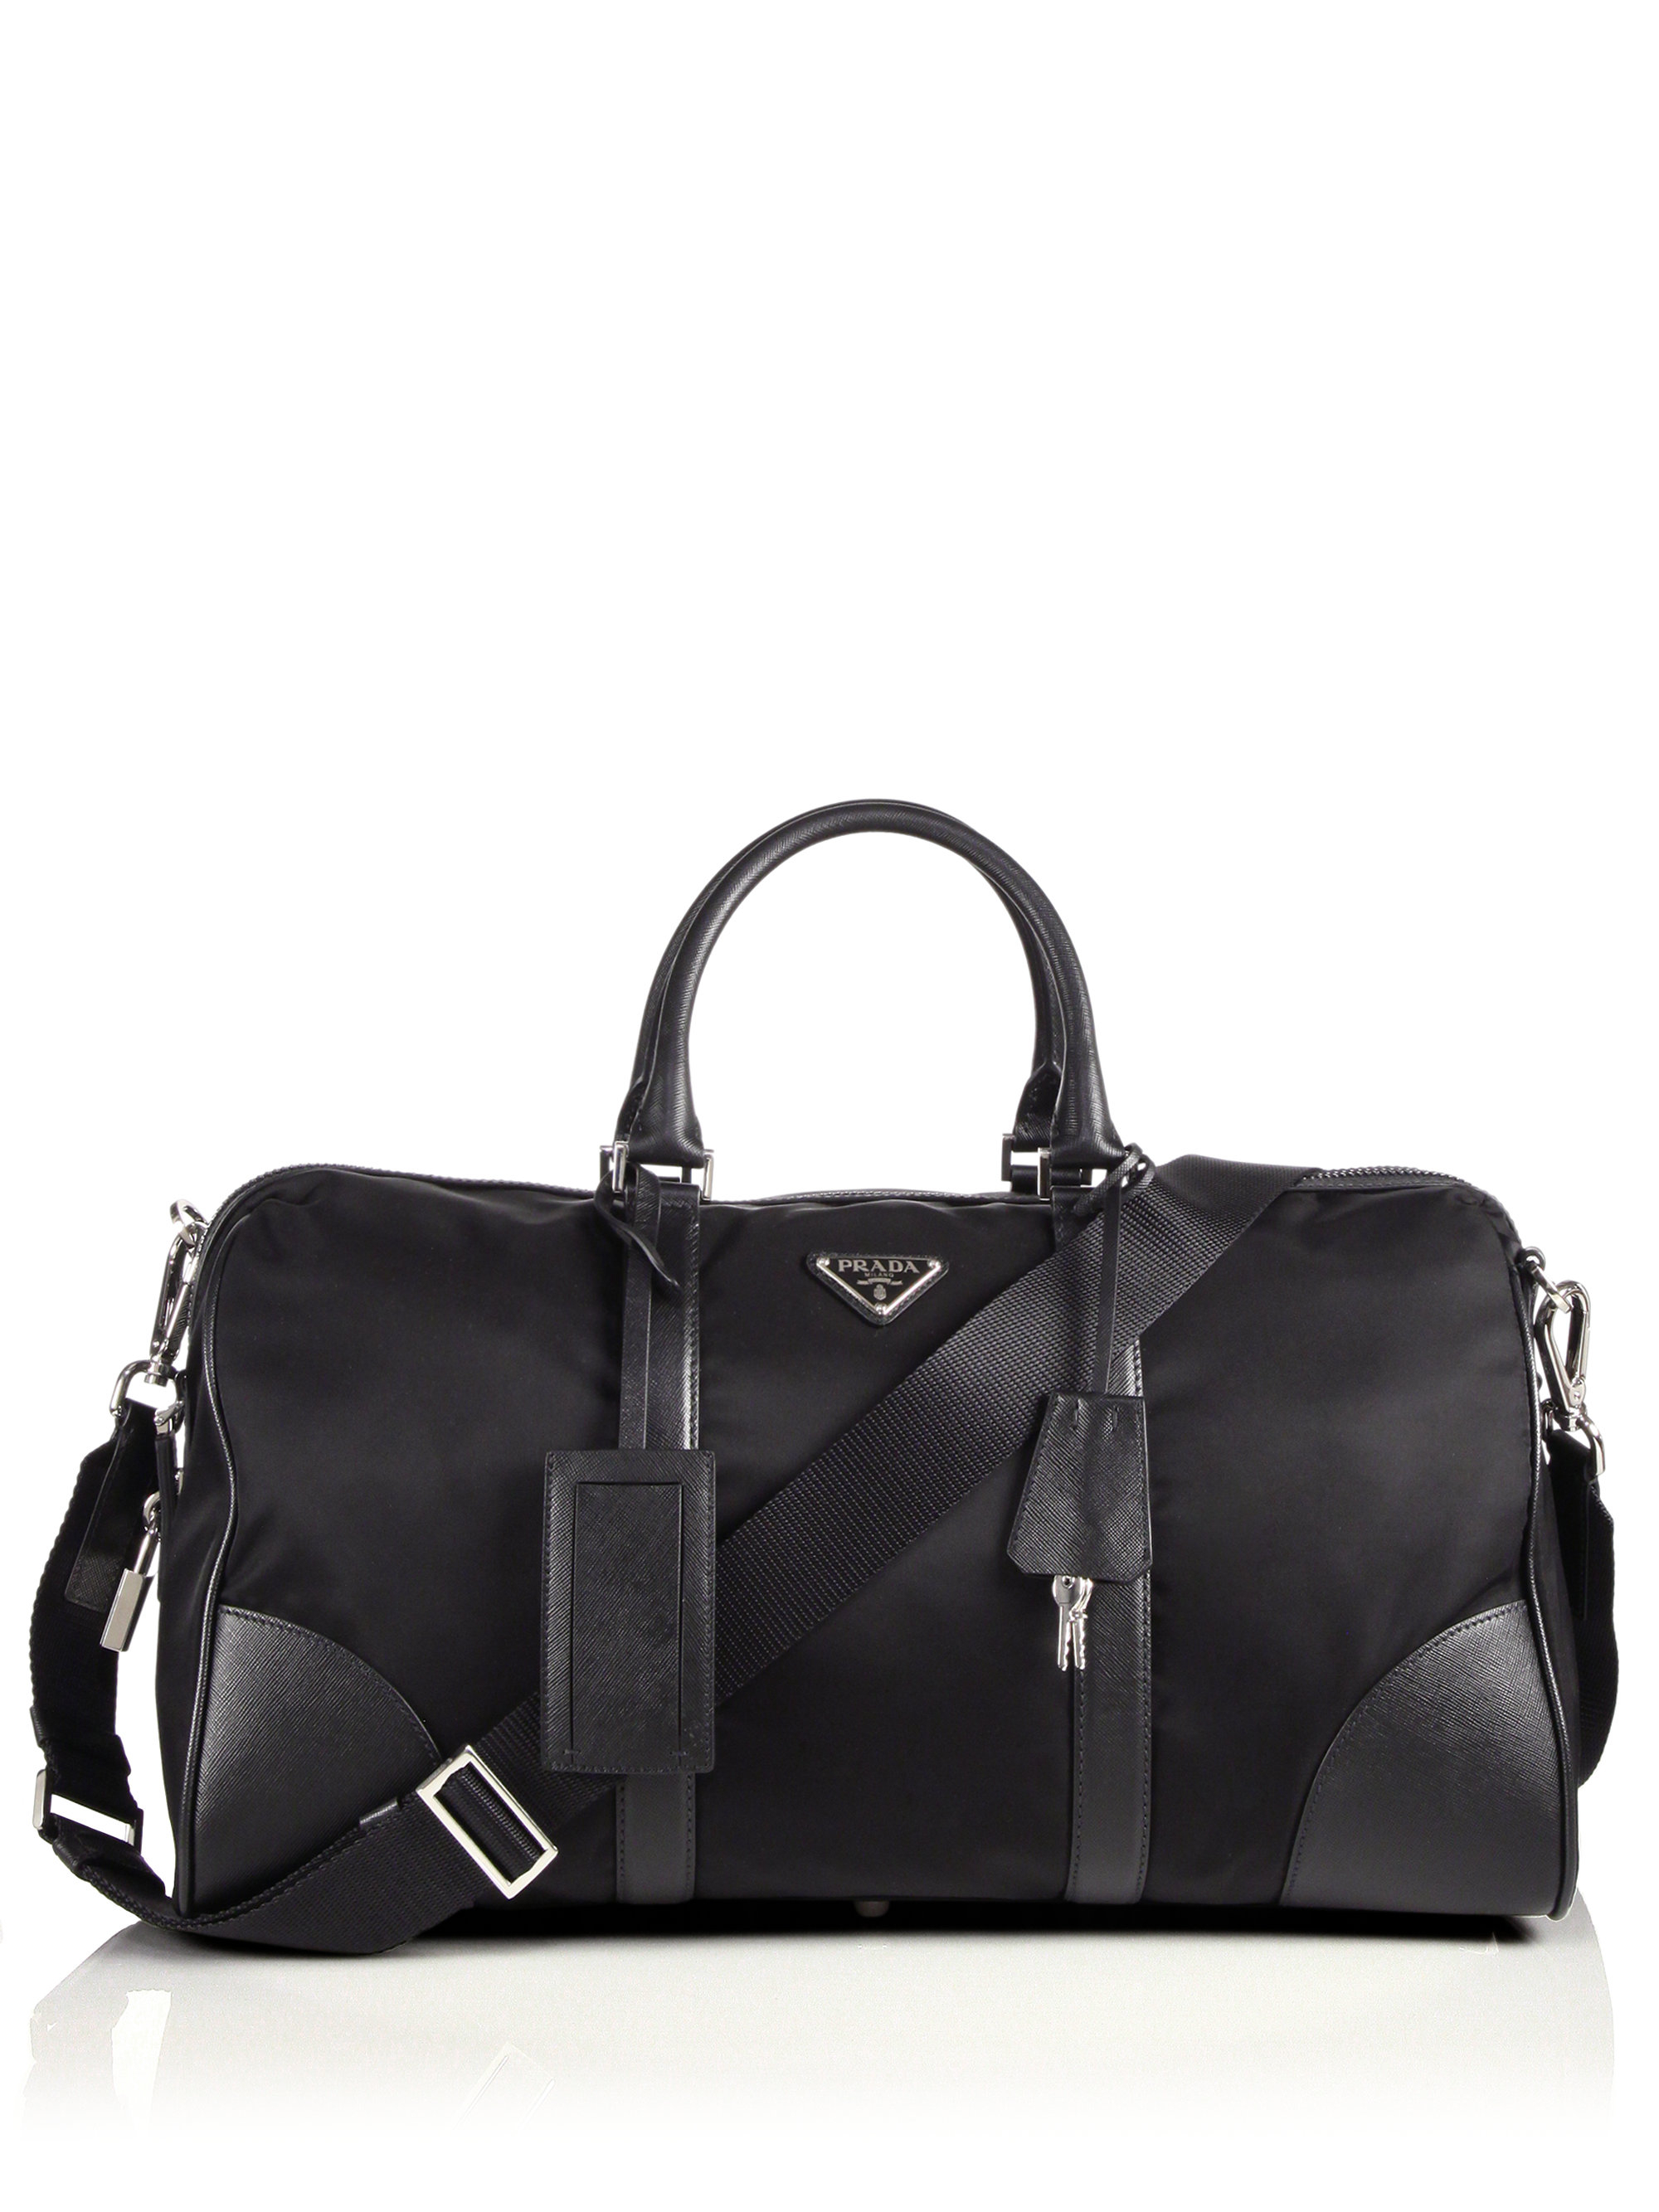 Prada Nylon \u0026amp; Saffiano Leather Duffel Bag in Black for Men | Lyst